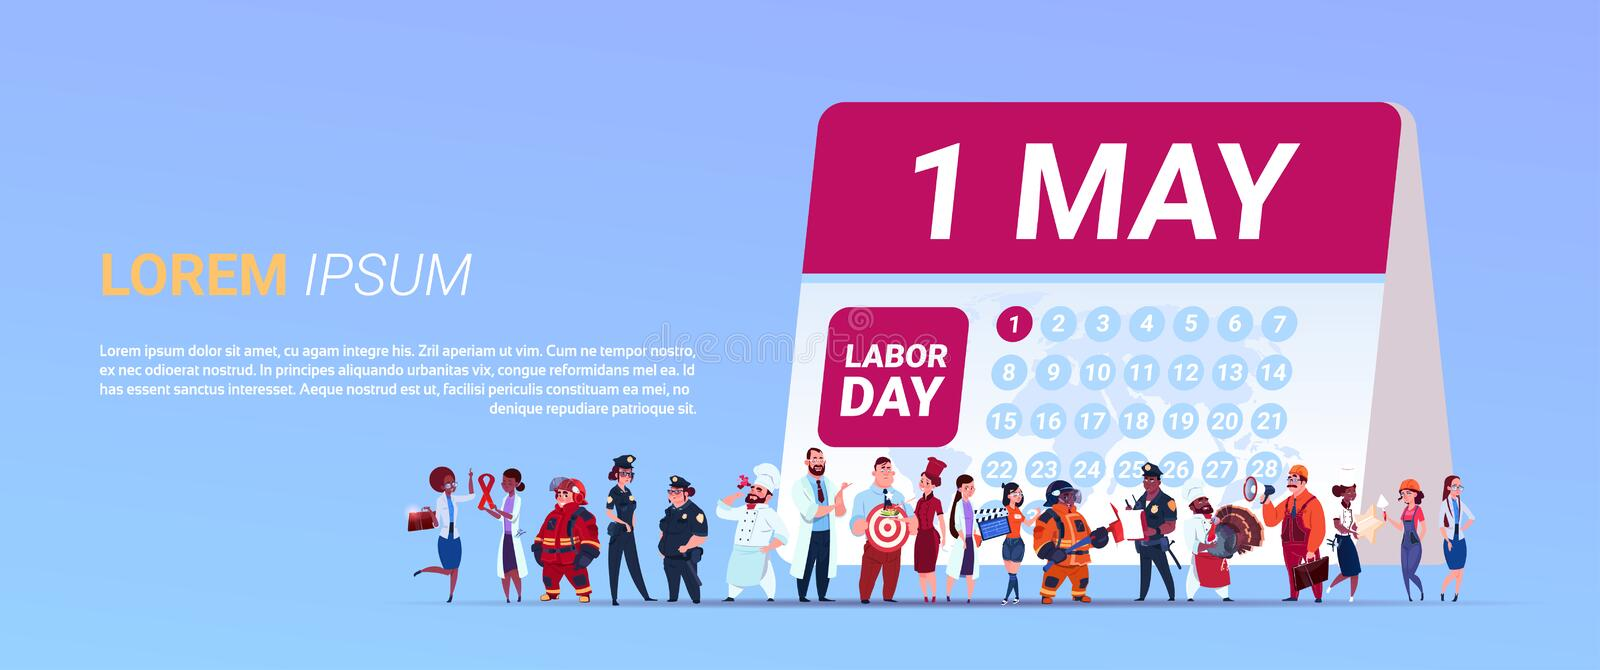 Labor Day Poster With Group Of People Of Different Occupations Standing Calender With 1 May Date Background stock illustration